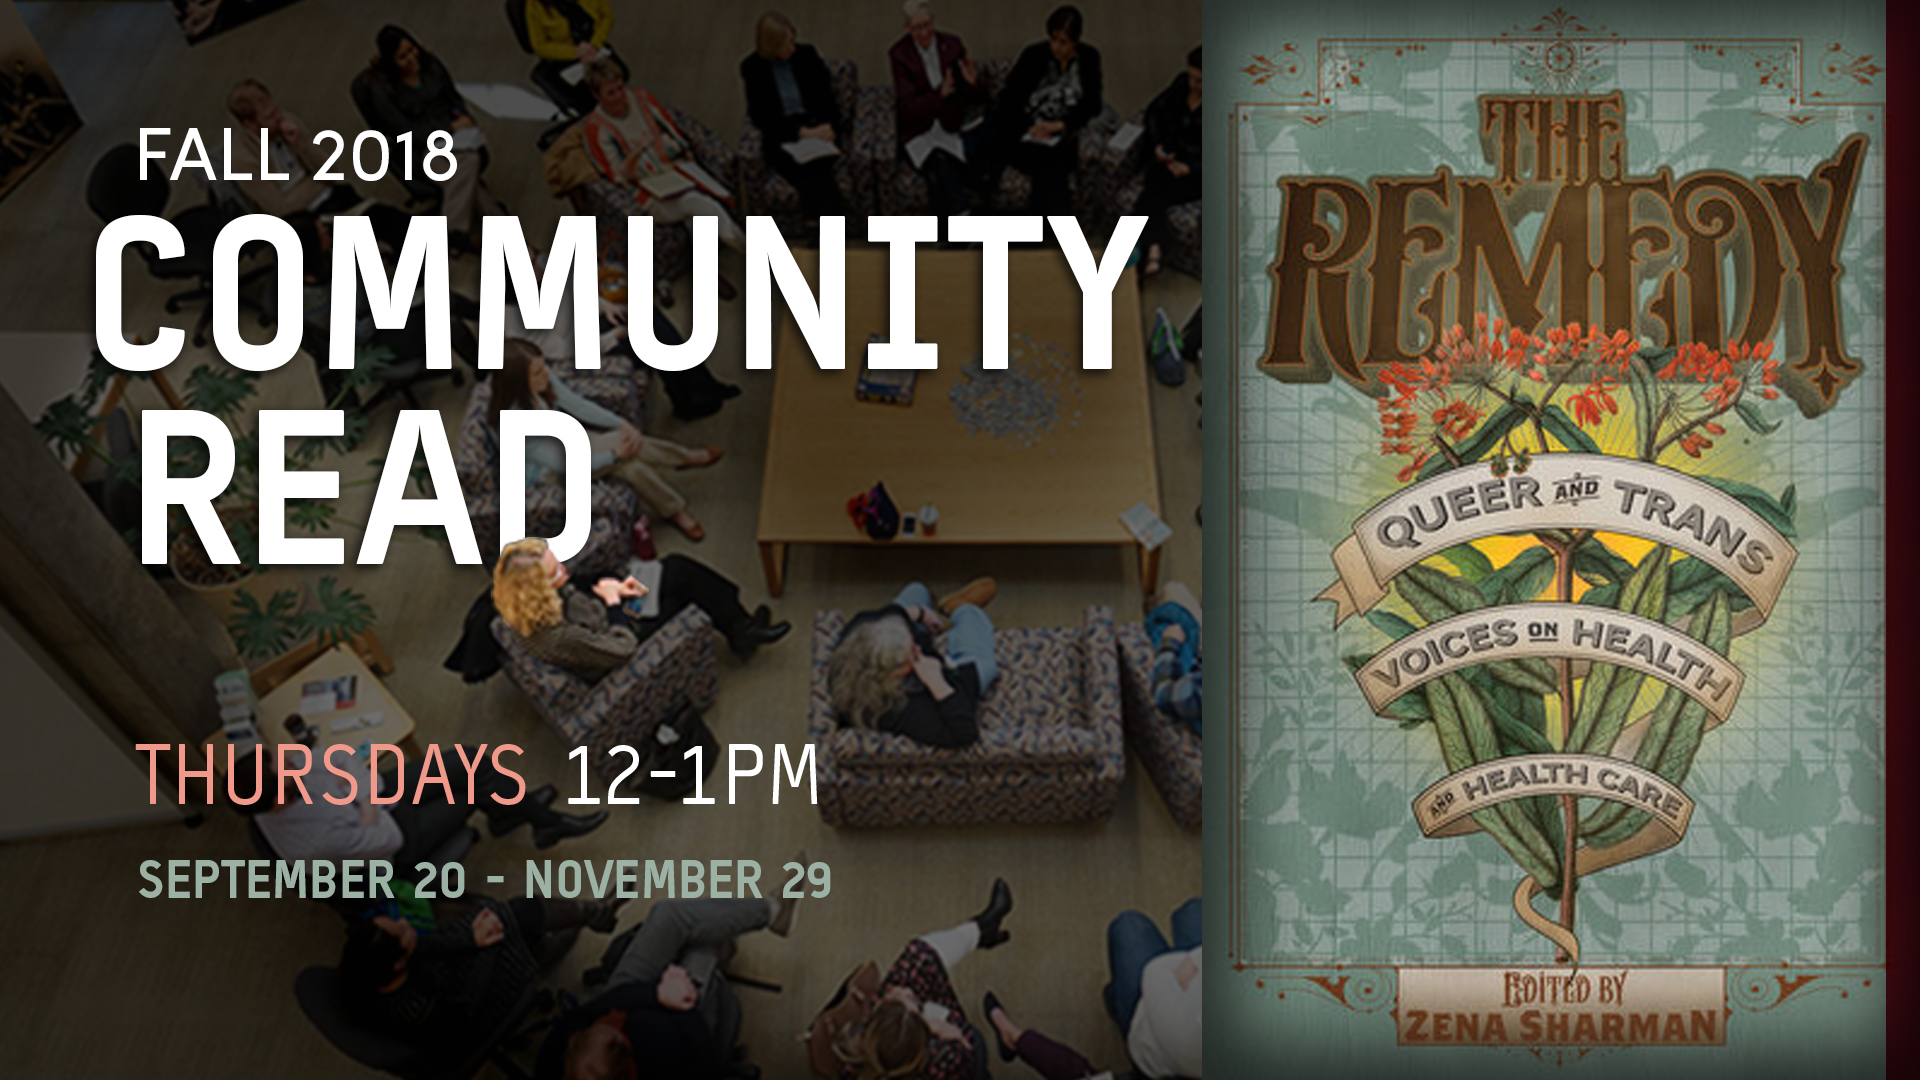 Community Read Fall 2018